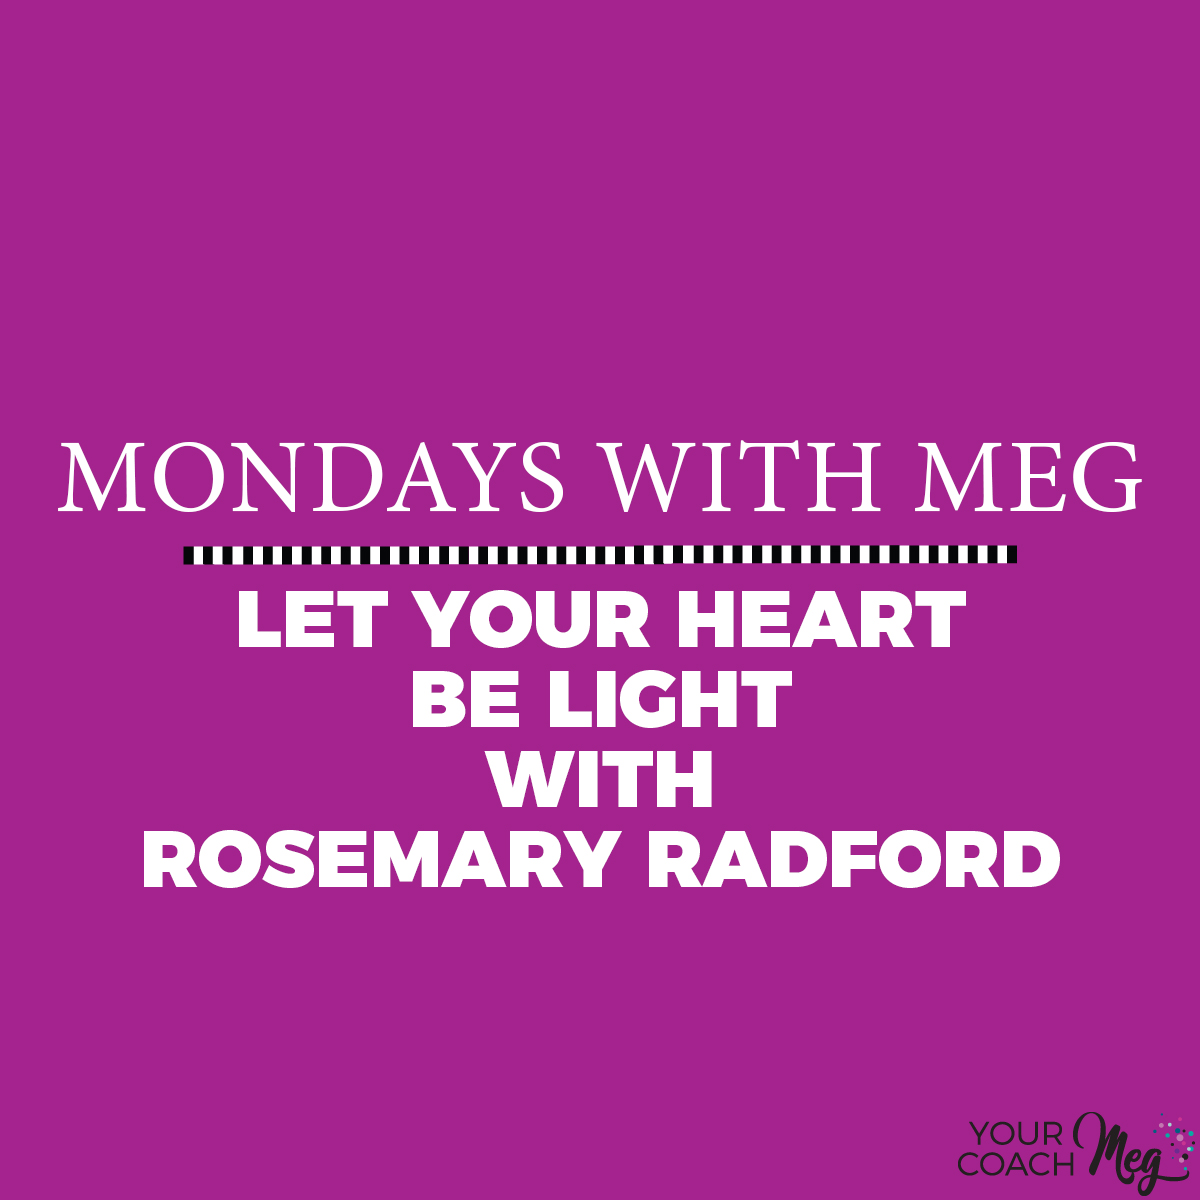 MONDAYS WITH MEG WITH GARDEN KEY CO.: LET YOUR HEART BE LIGHT